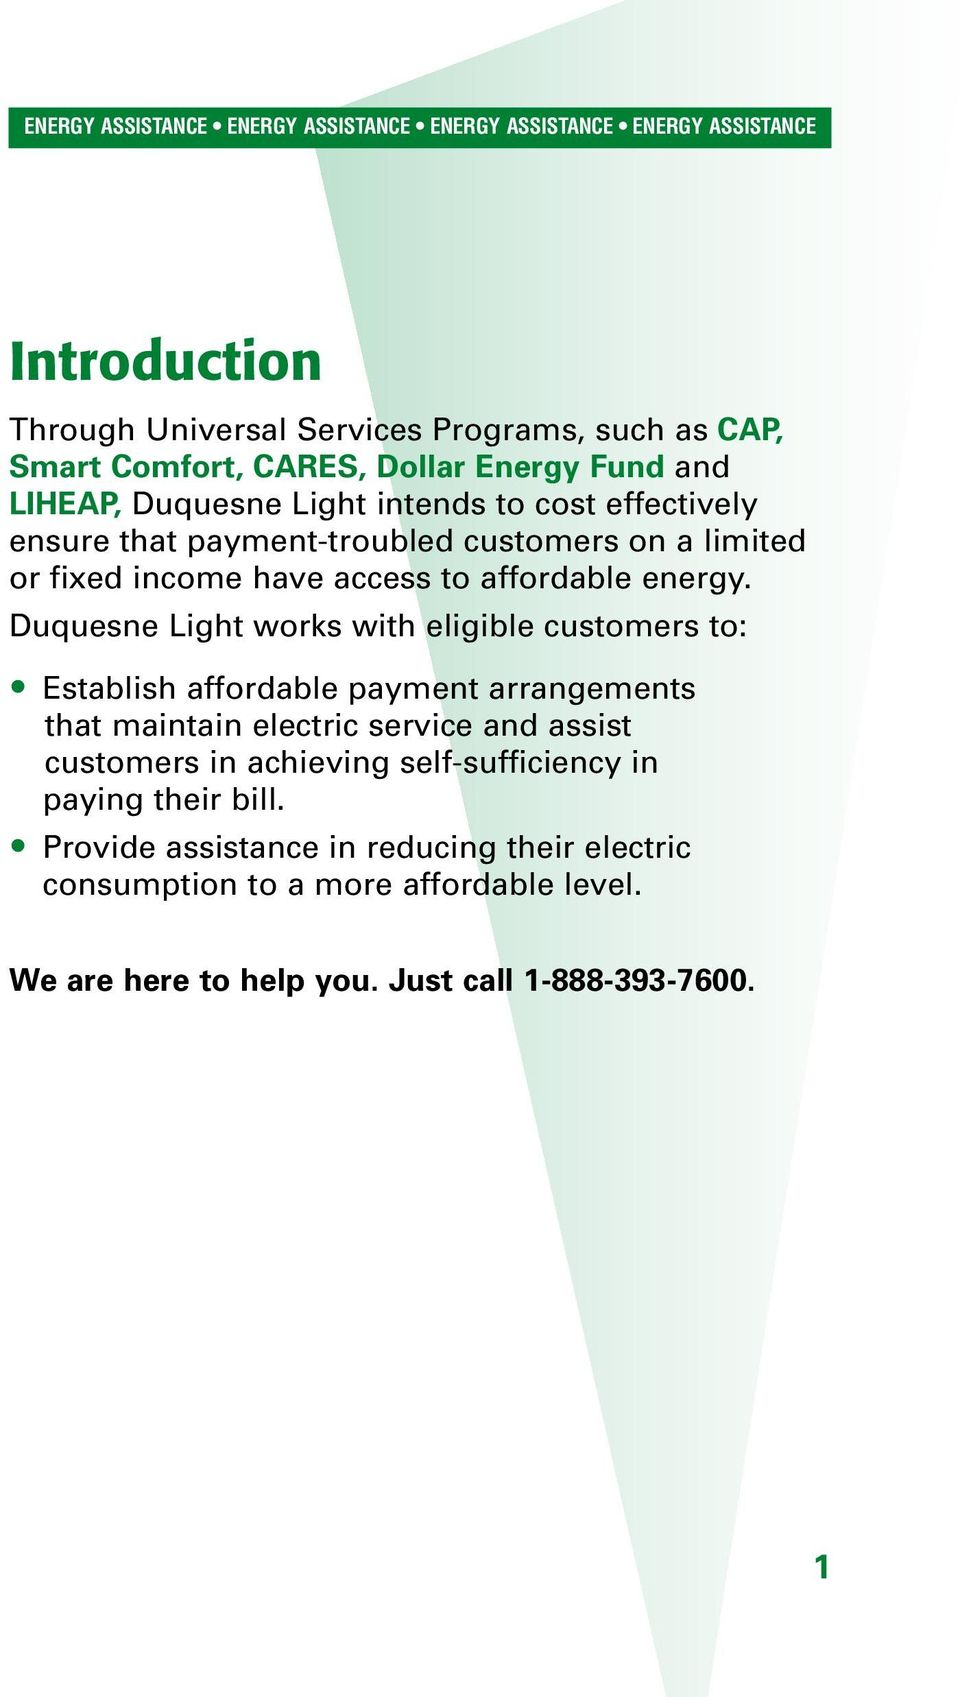 Duquesne Light Works With Eligible Customers To: Establish Affordable  Payment Arrangements That Maintain Electric Service